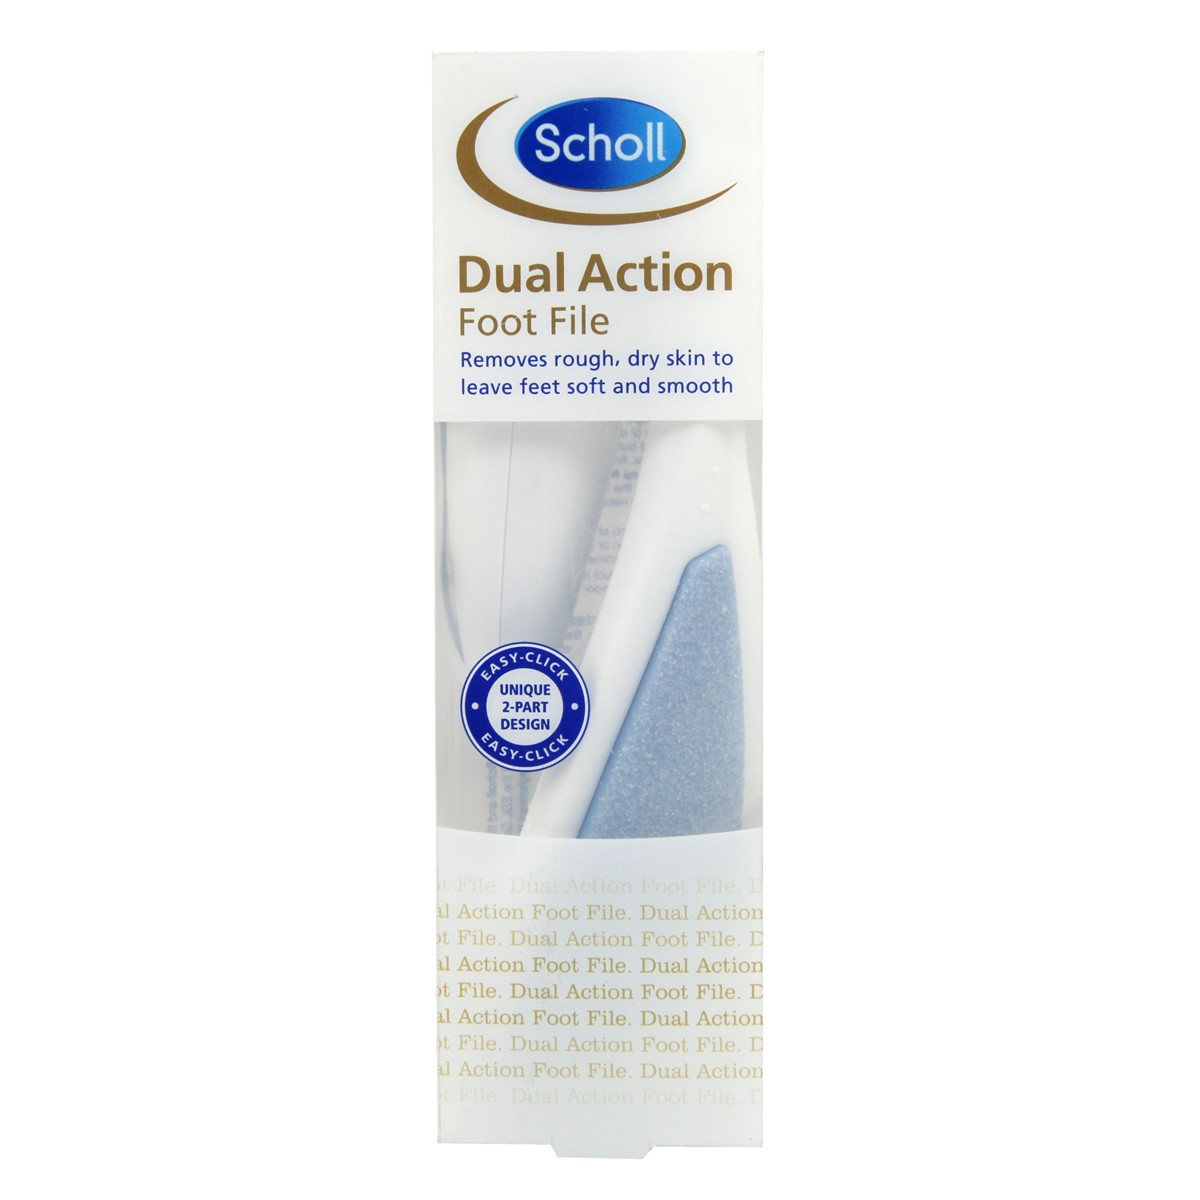 Scholl Dual Action Foot File